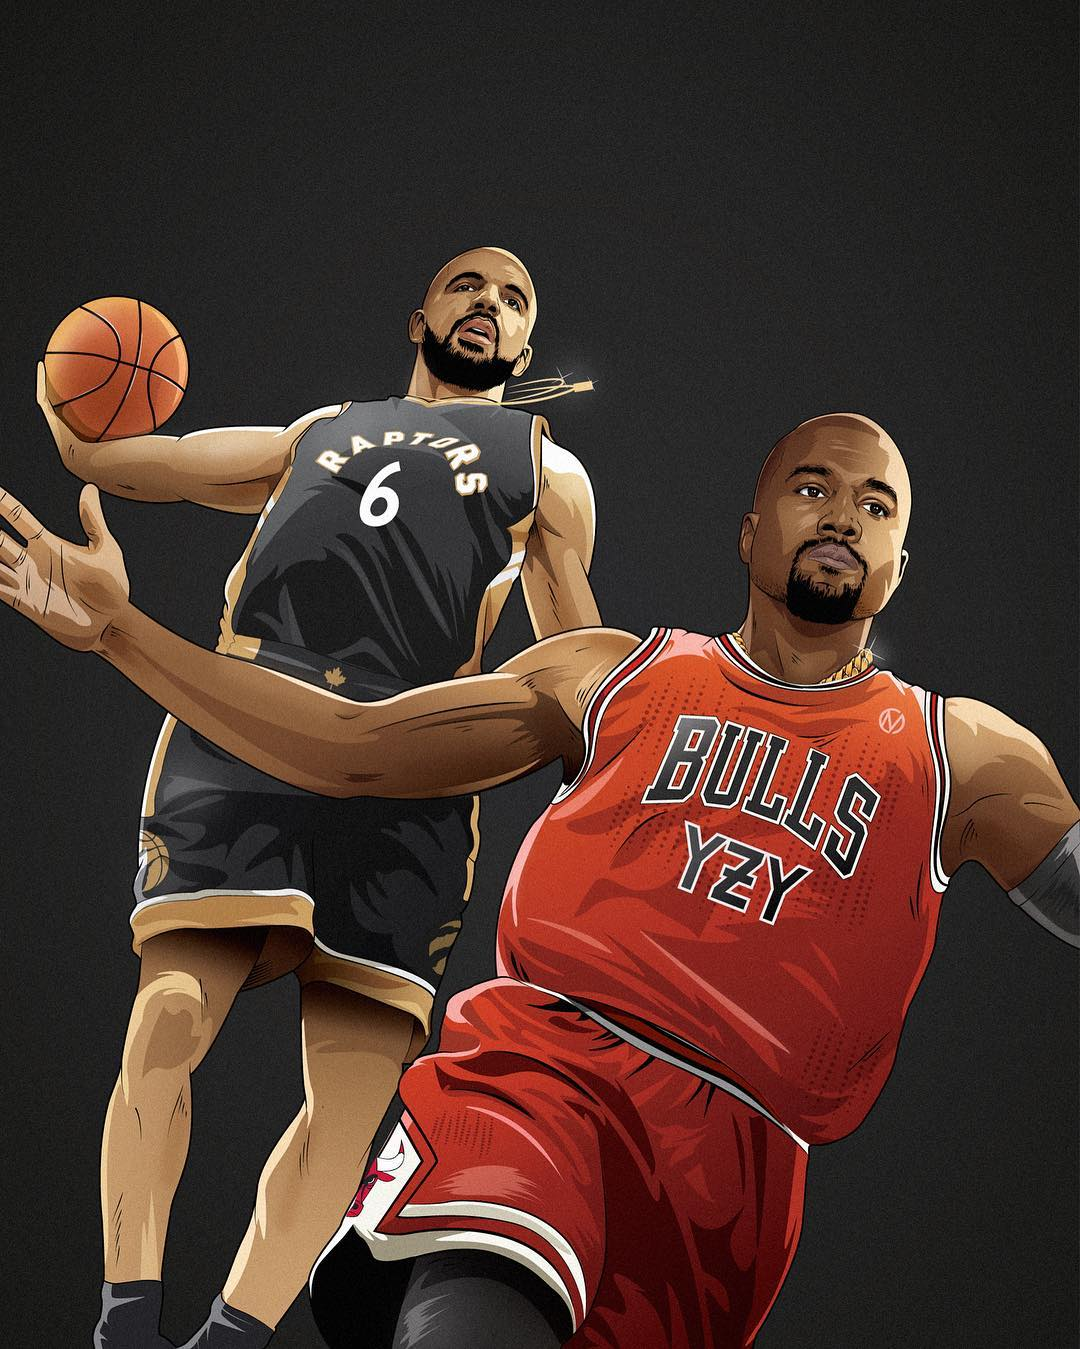 Drake x Kanye West Calabasas All-Star Game Art